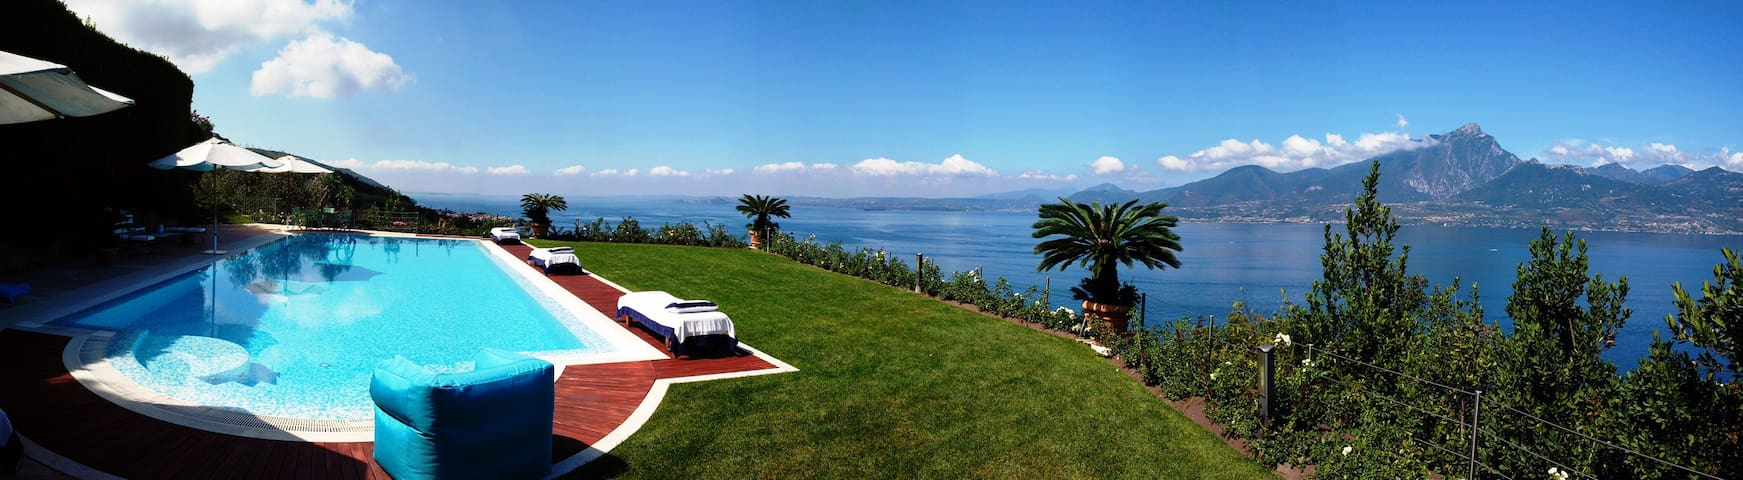 Large swimming pool with stunning view